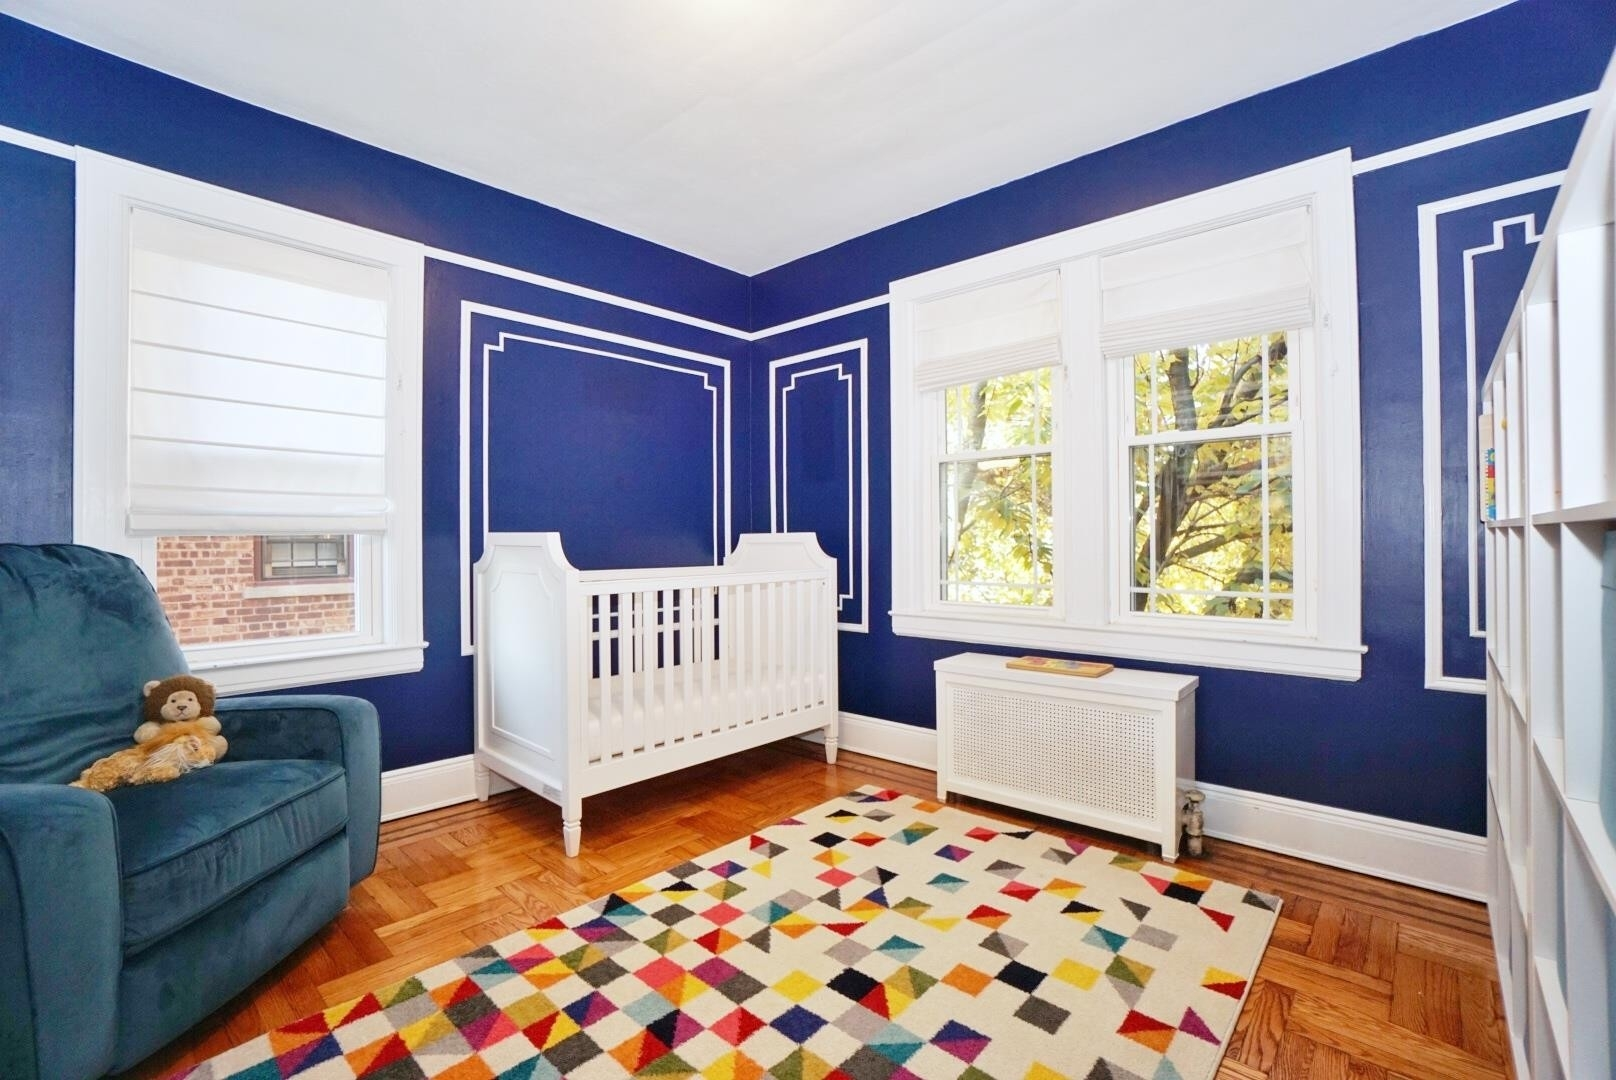 13. Single Family Townhouse for Sale at 1684 RYDER ST , TOWNHOUSE Marine Park, Brooklyn, NY 11234